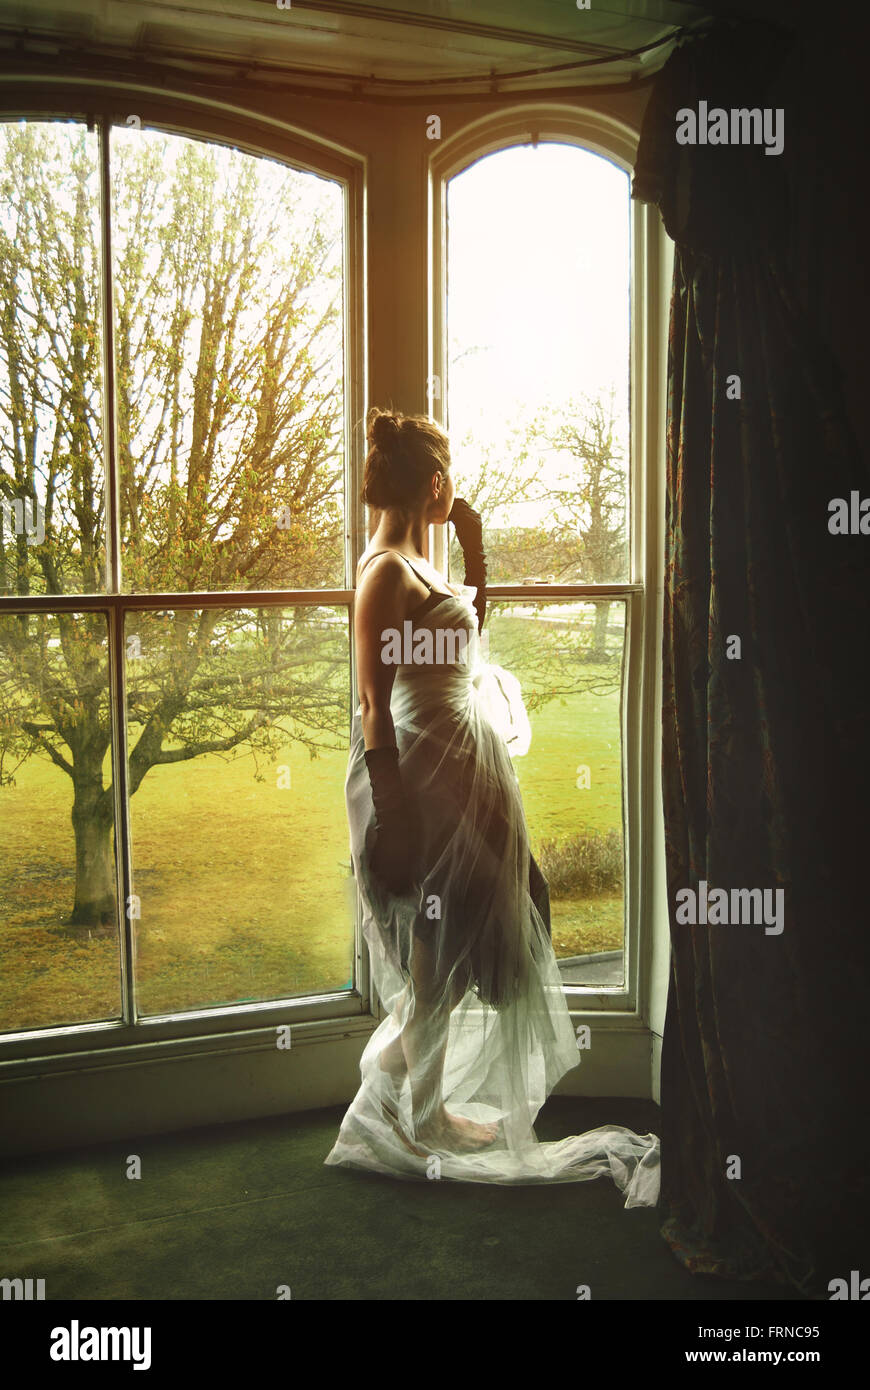 young female standing by the window - Stock Image